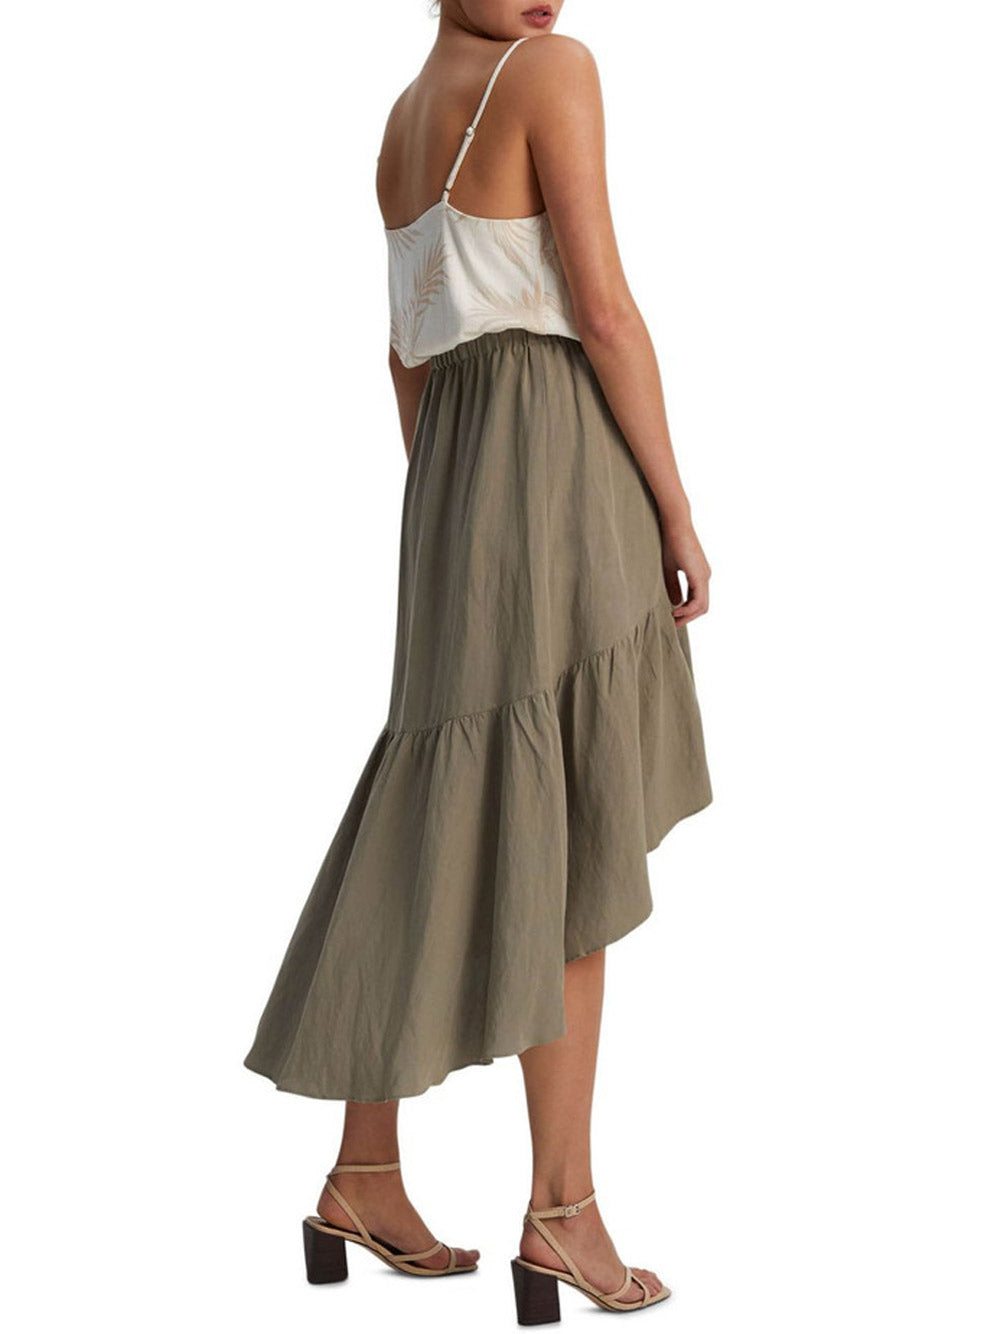 STAPLE THE LABEL Acacia Ruffled Midi Skirt